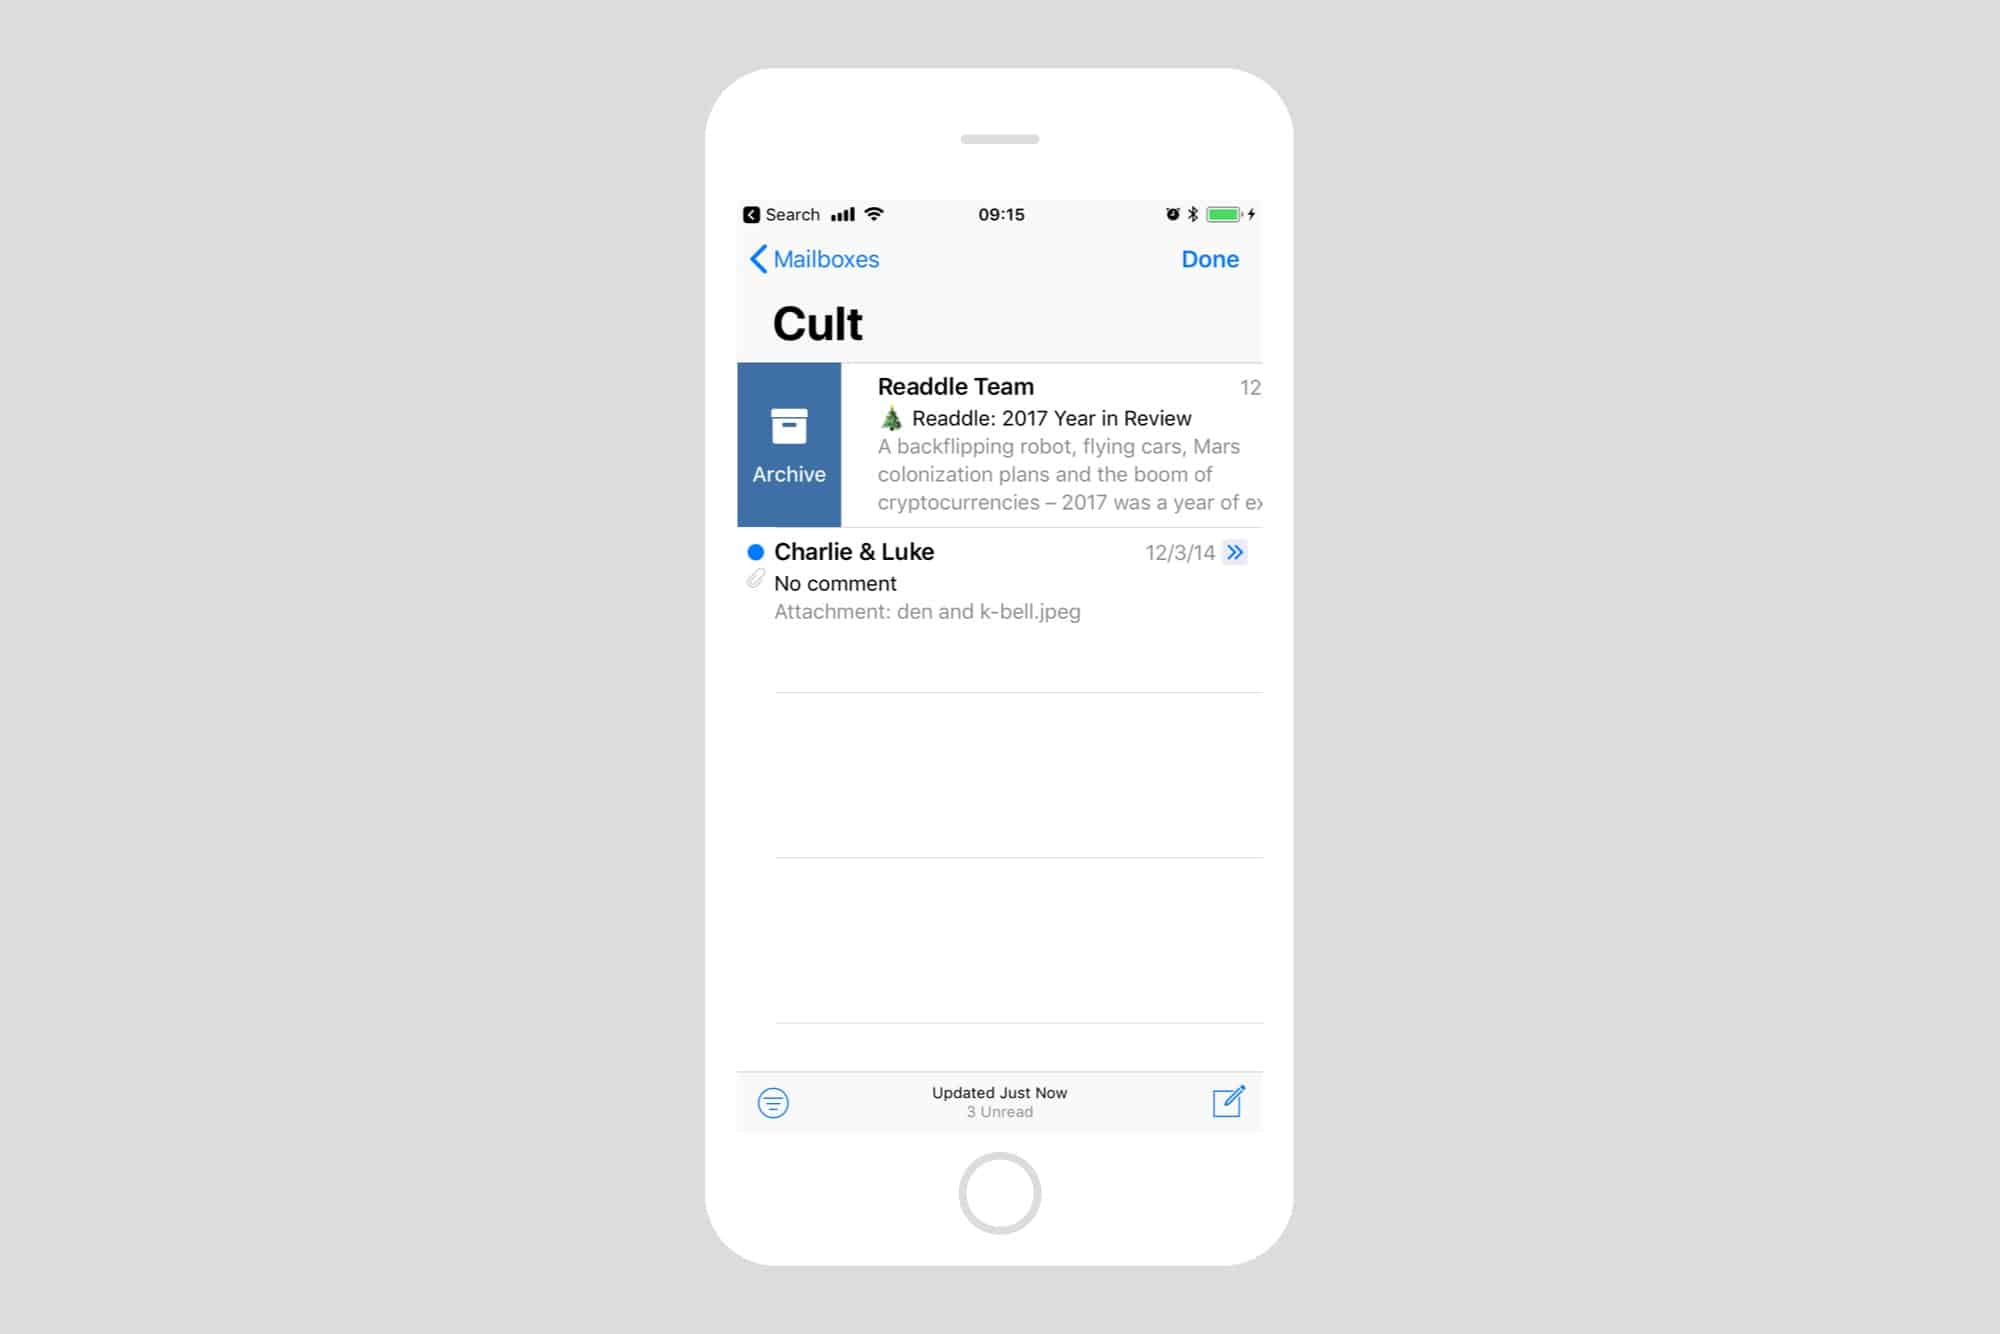 Archive mail swipe gestures